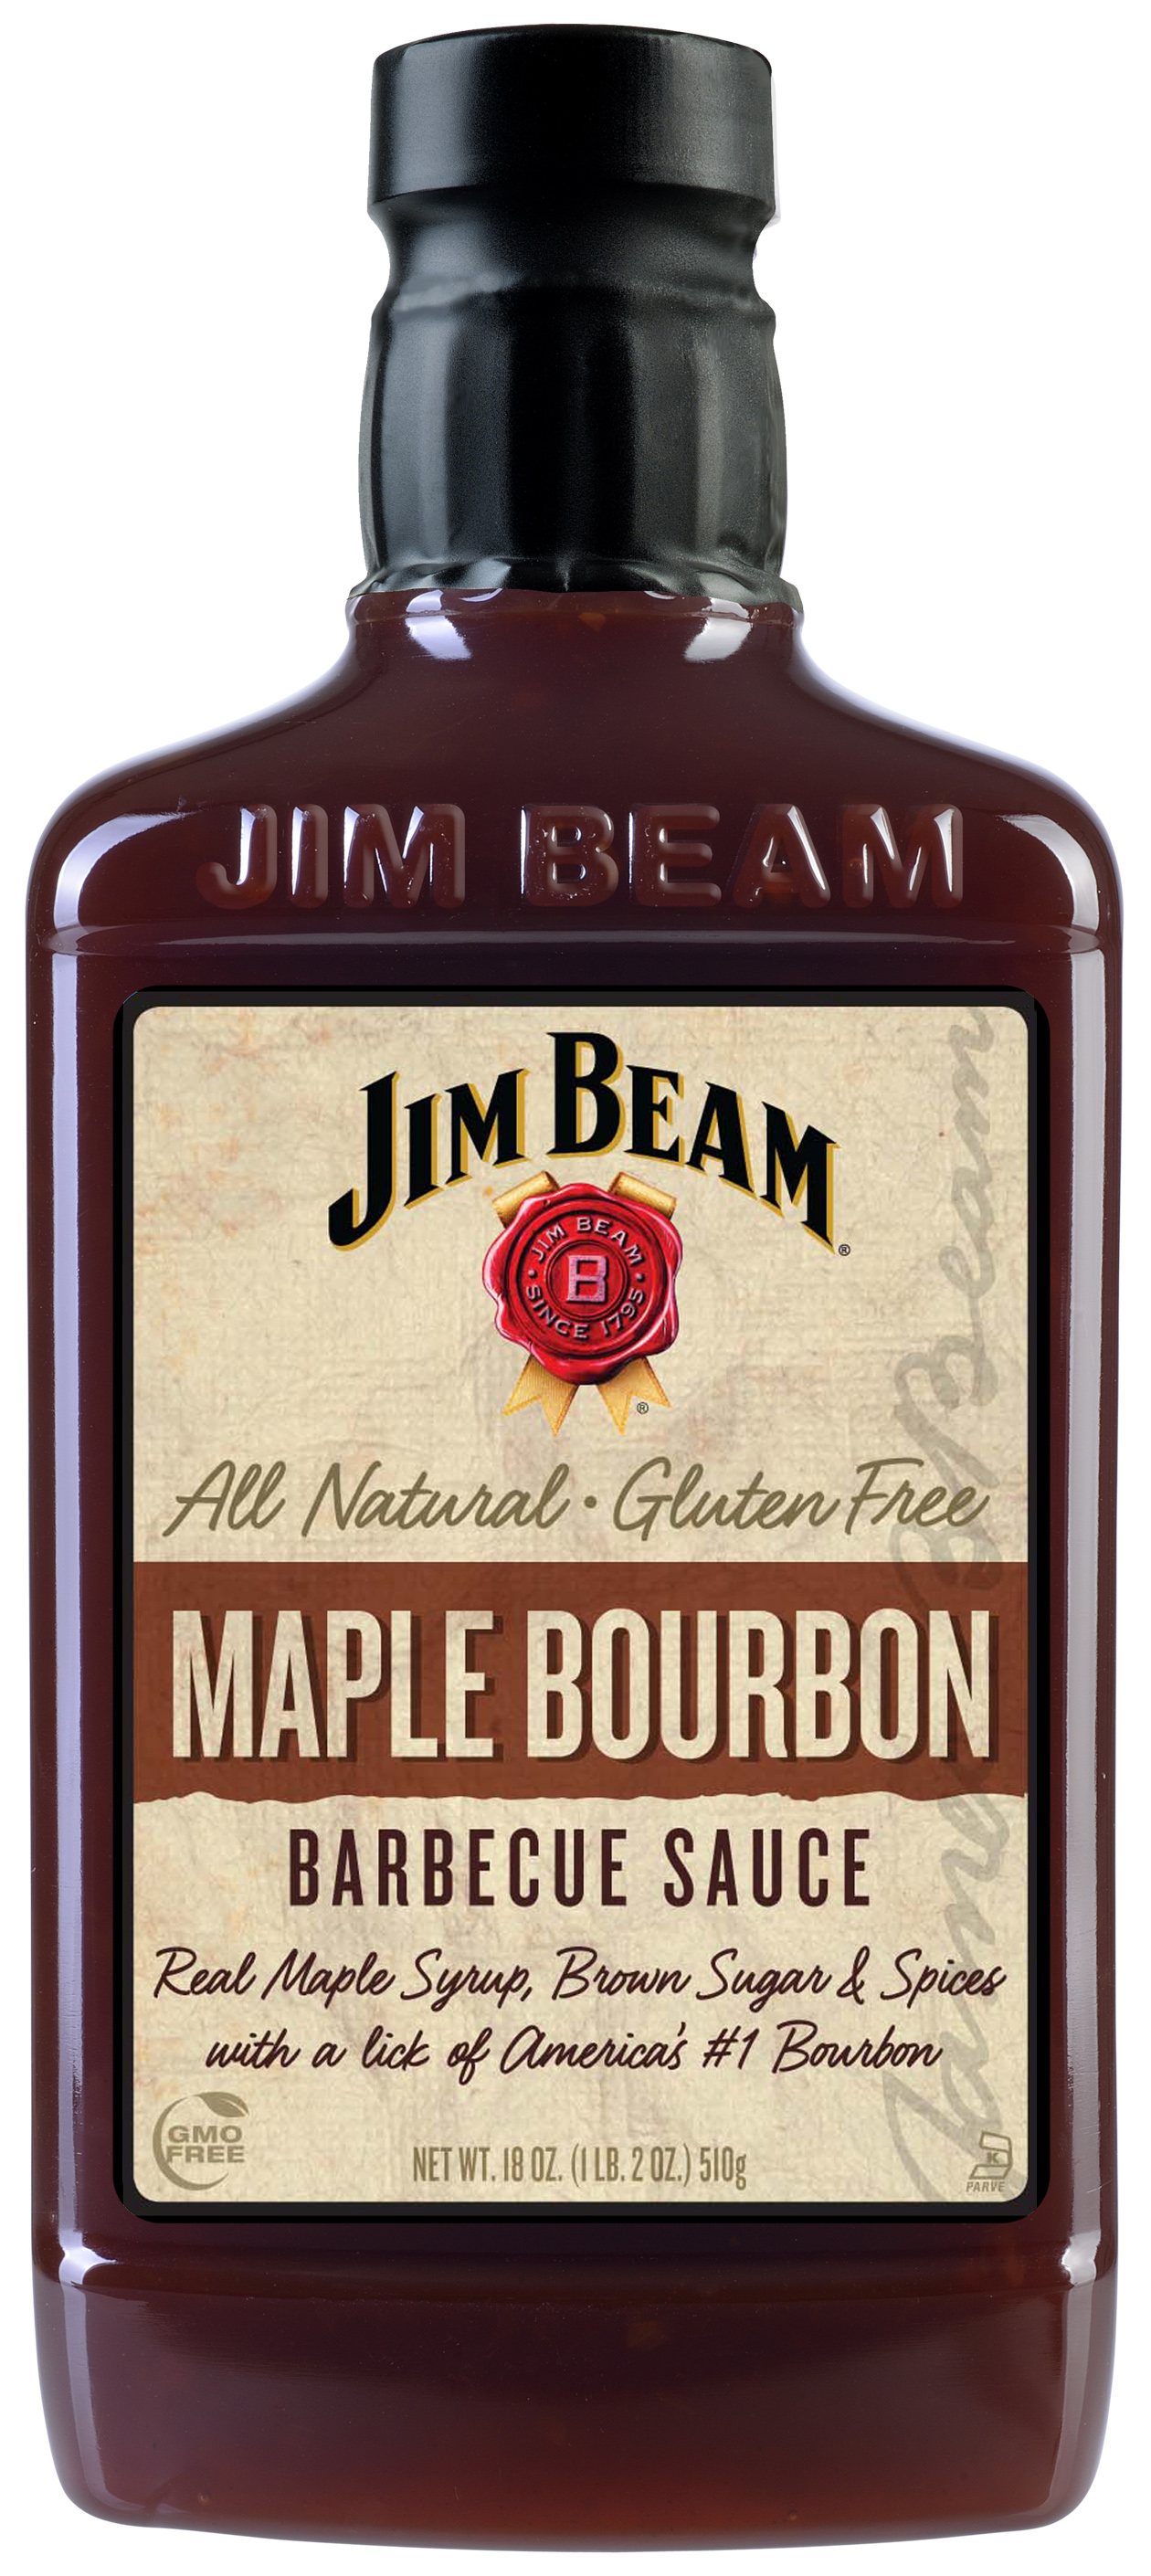 Jim Beam Maple Bourbon barbecue sauce 395 ml (510g)